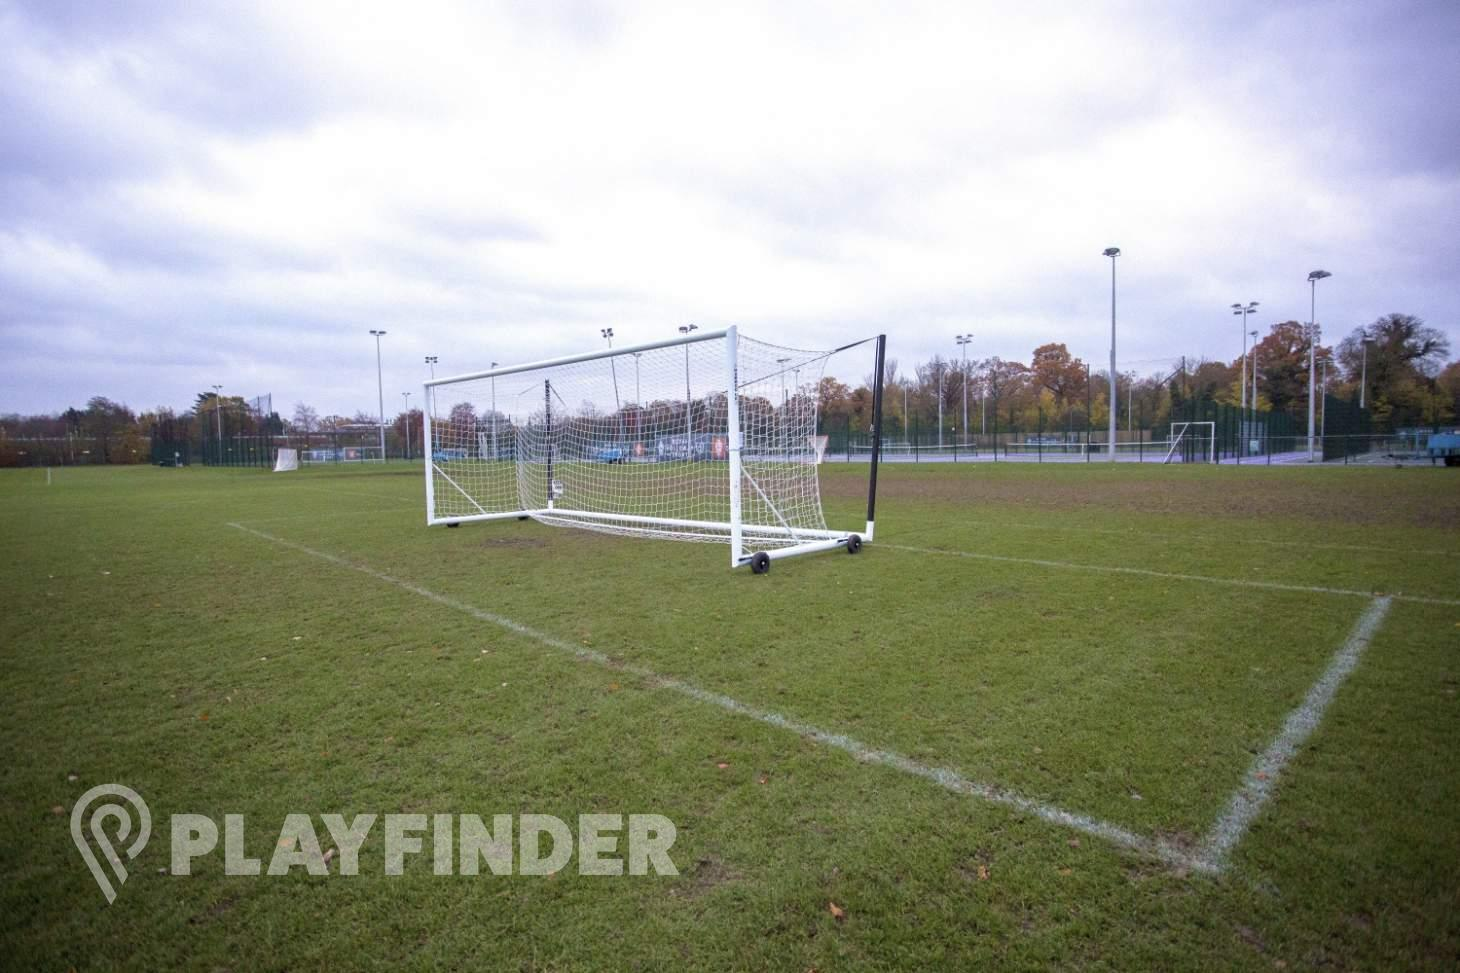 Royal Holloway University Sports Centre 11 a side | Grass football pitch